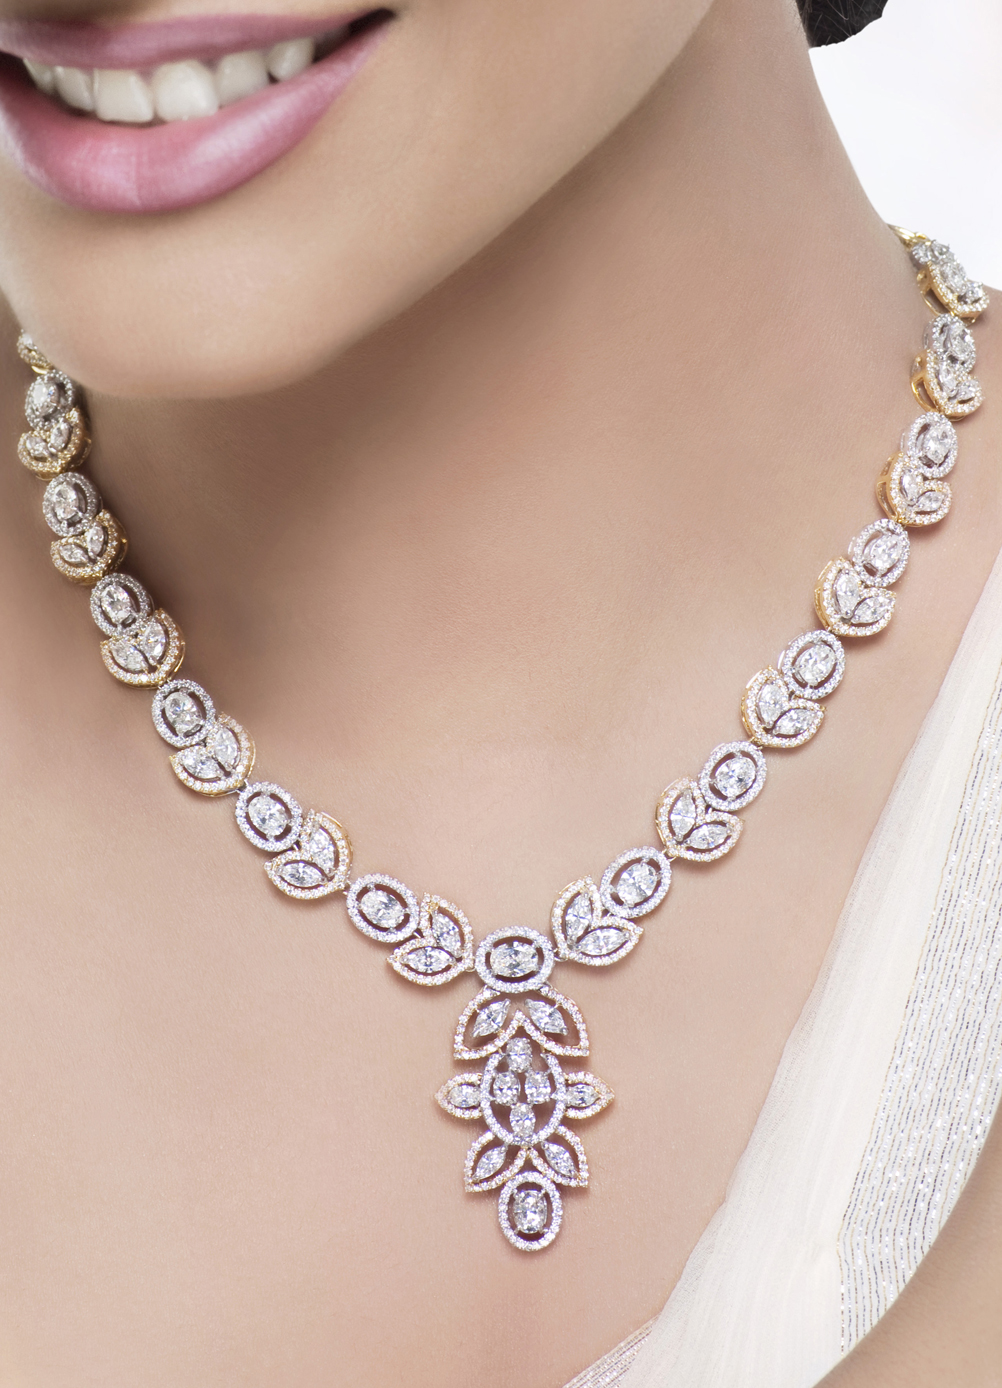 Diamond Necklace For Women – Things you must know